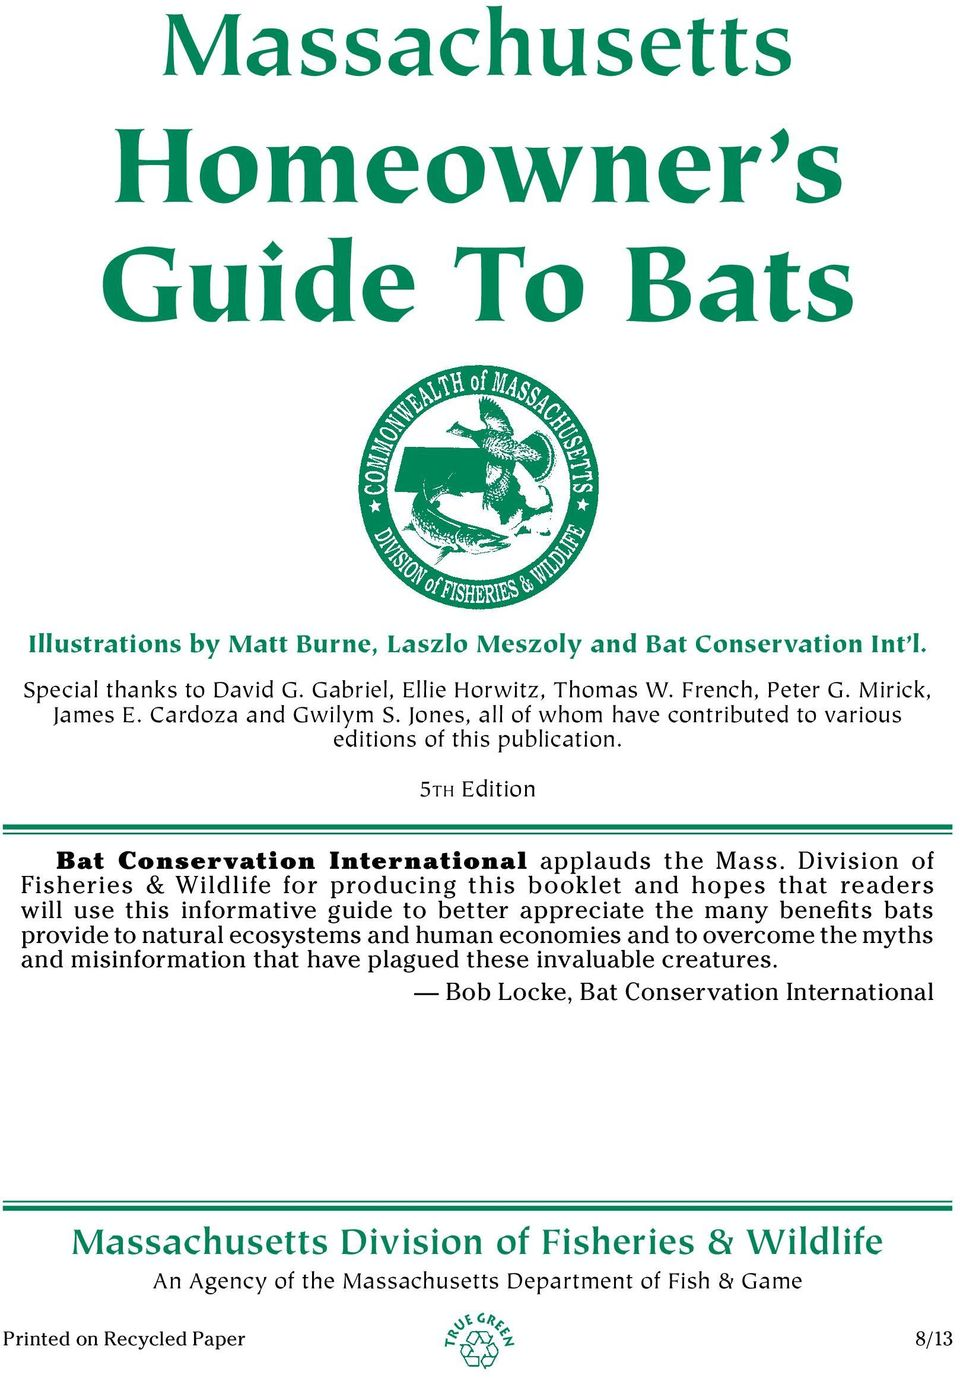 Division of Fisheries & Wildlife for producing this booklet and hopes that readers will use this informative guide to better appreciate the many benefits bats provide to natural ecosystems and human